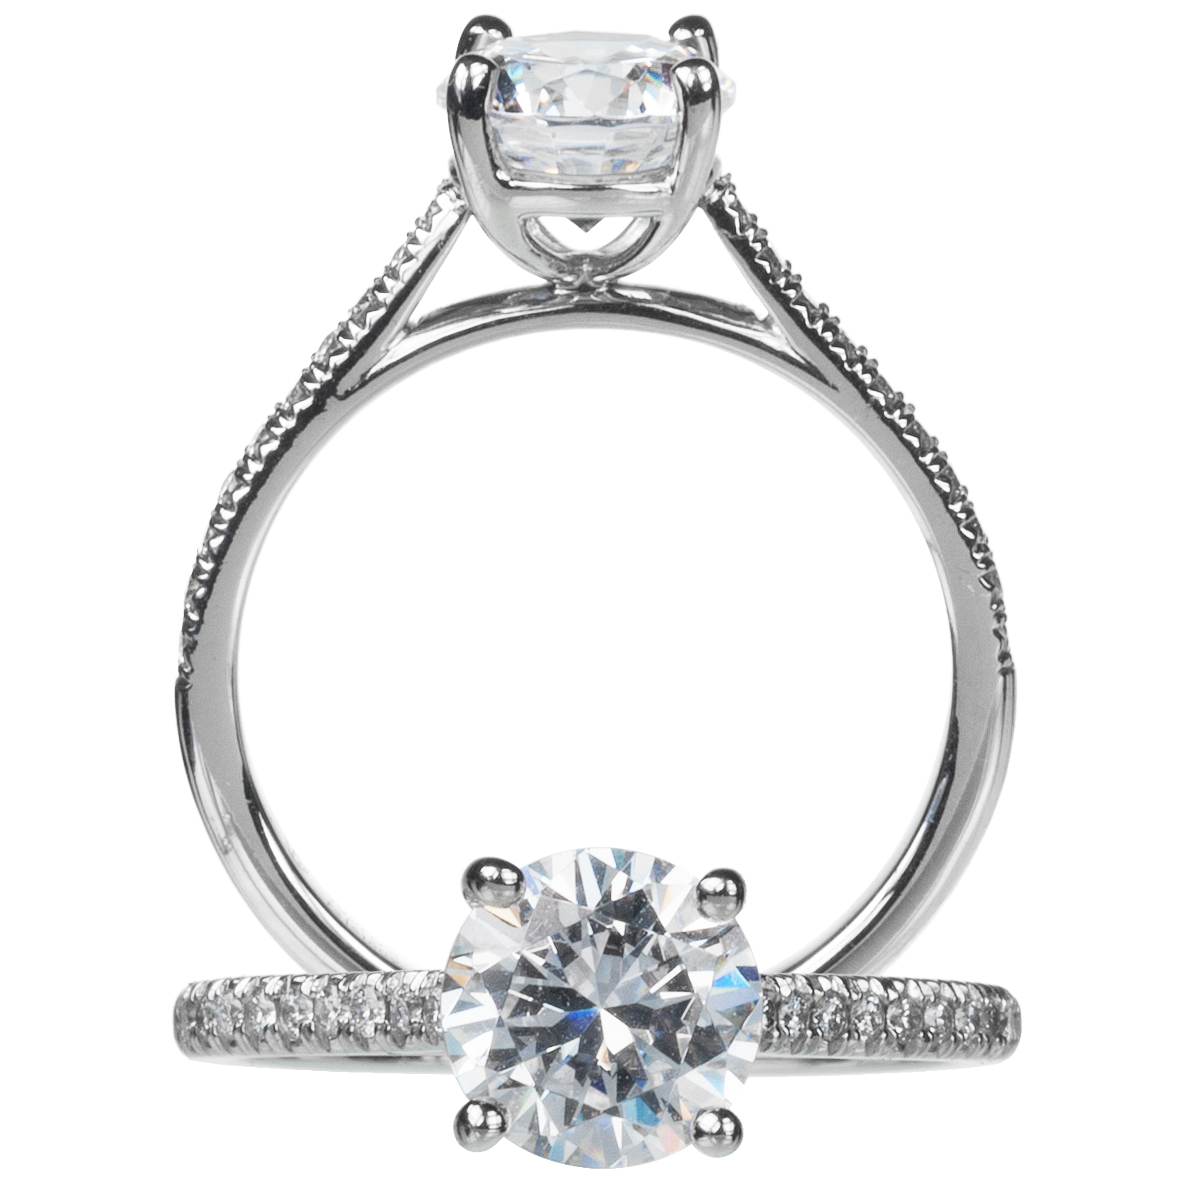 """New Aire"" Shared-Prong Solitaire Semi-Mounting"